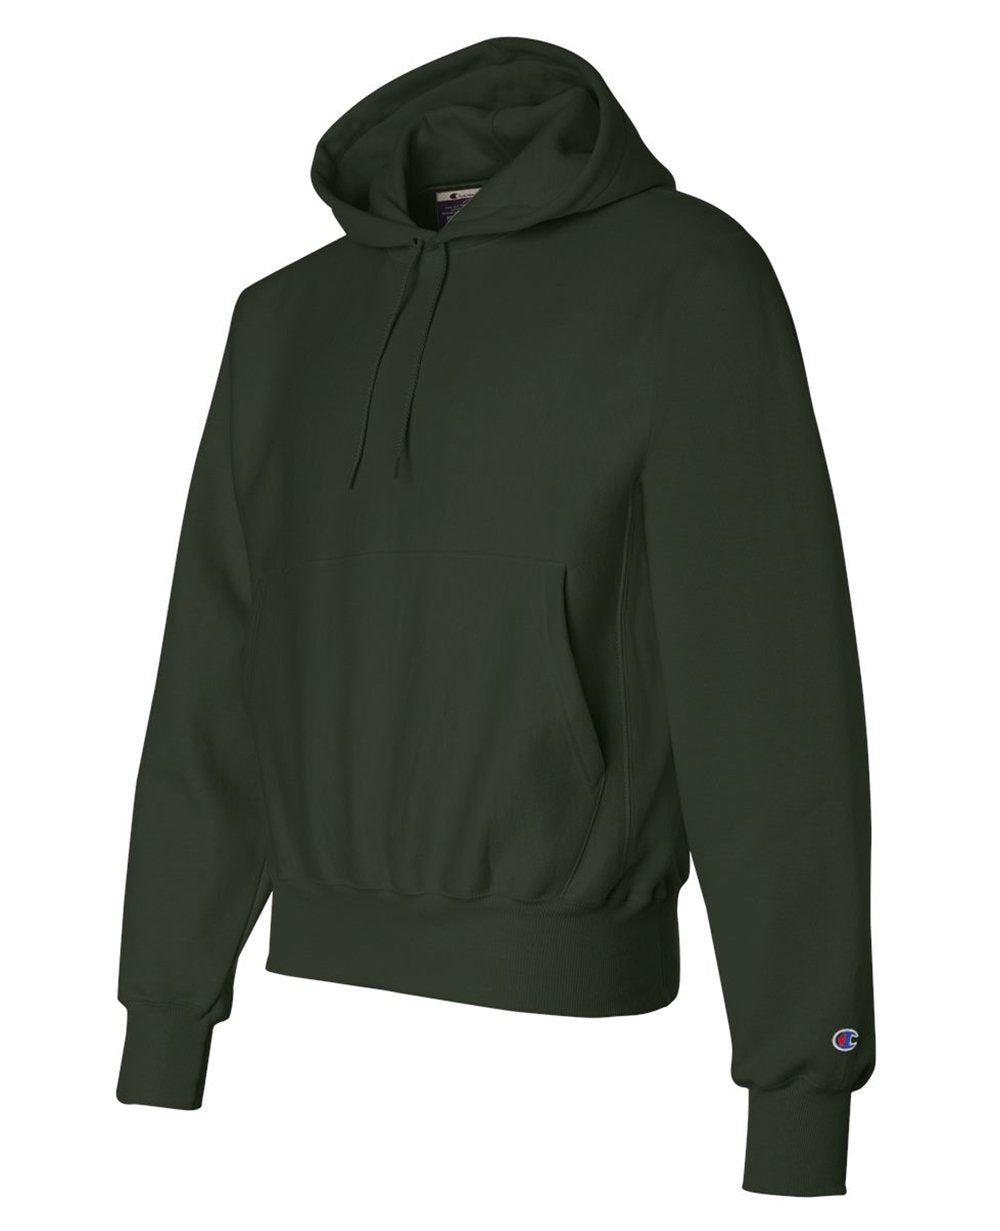 Sleeve Logo Pullover Hoodies in Dark Green